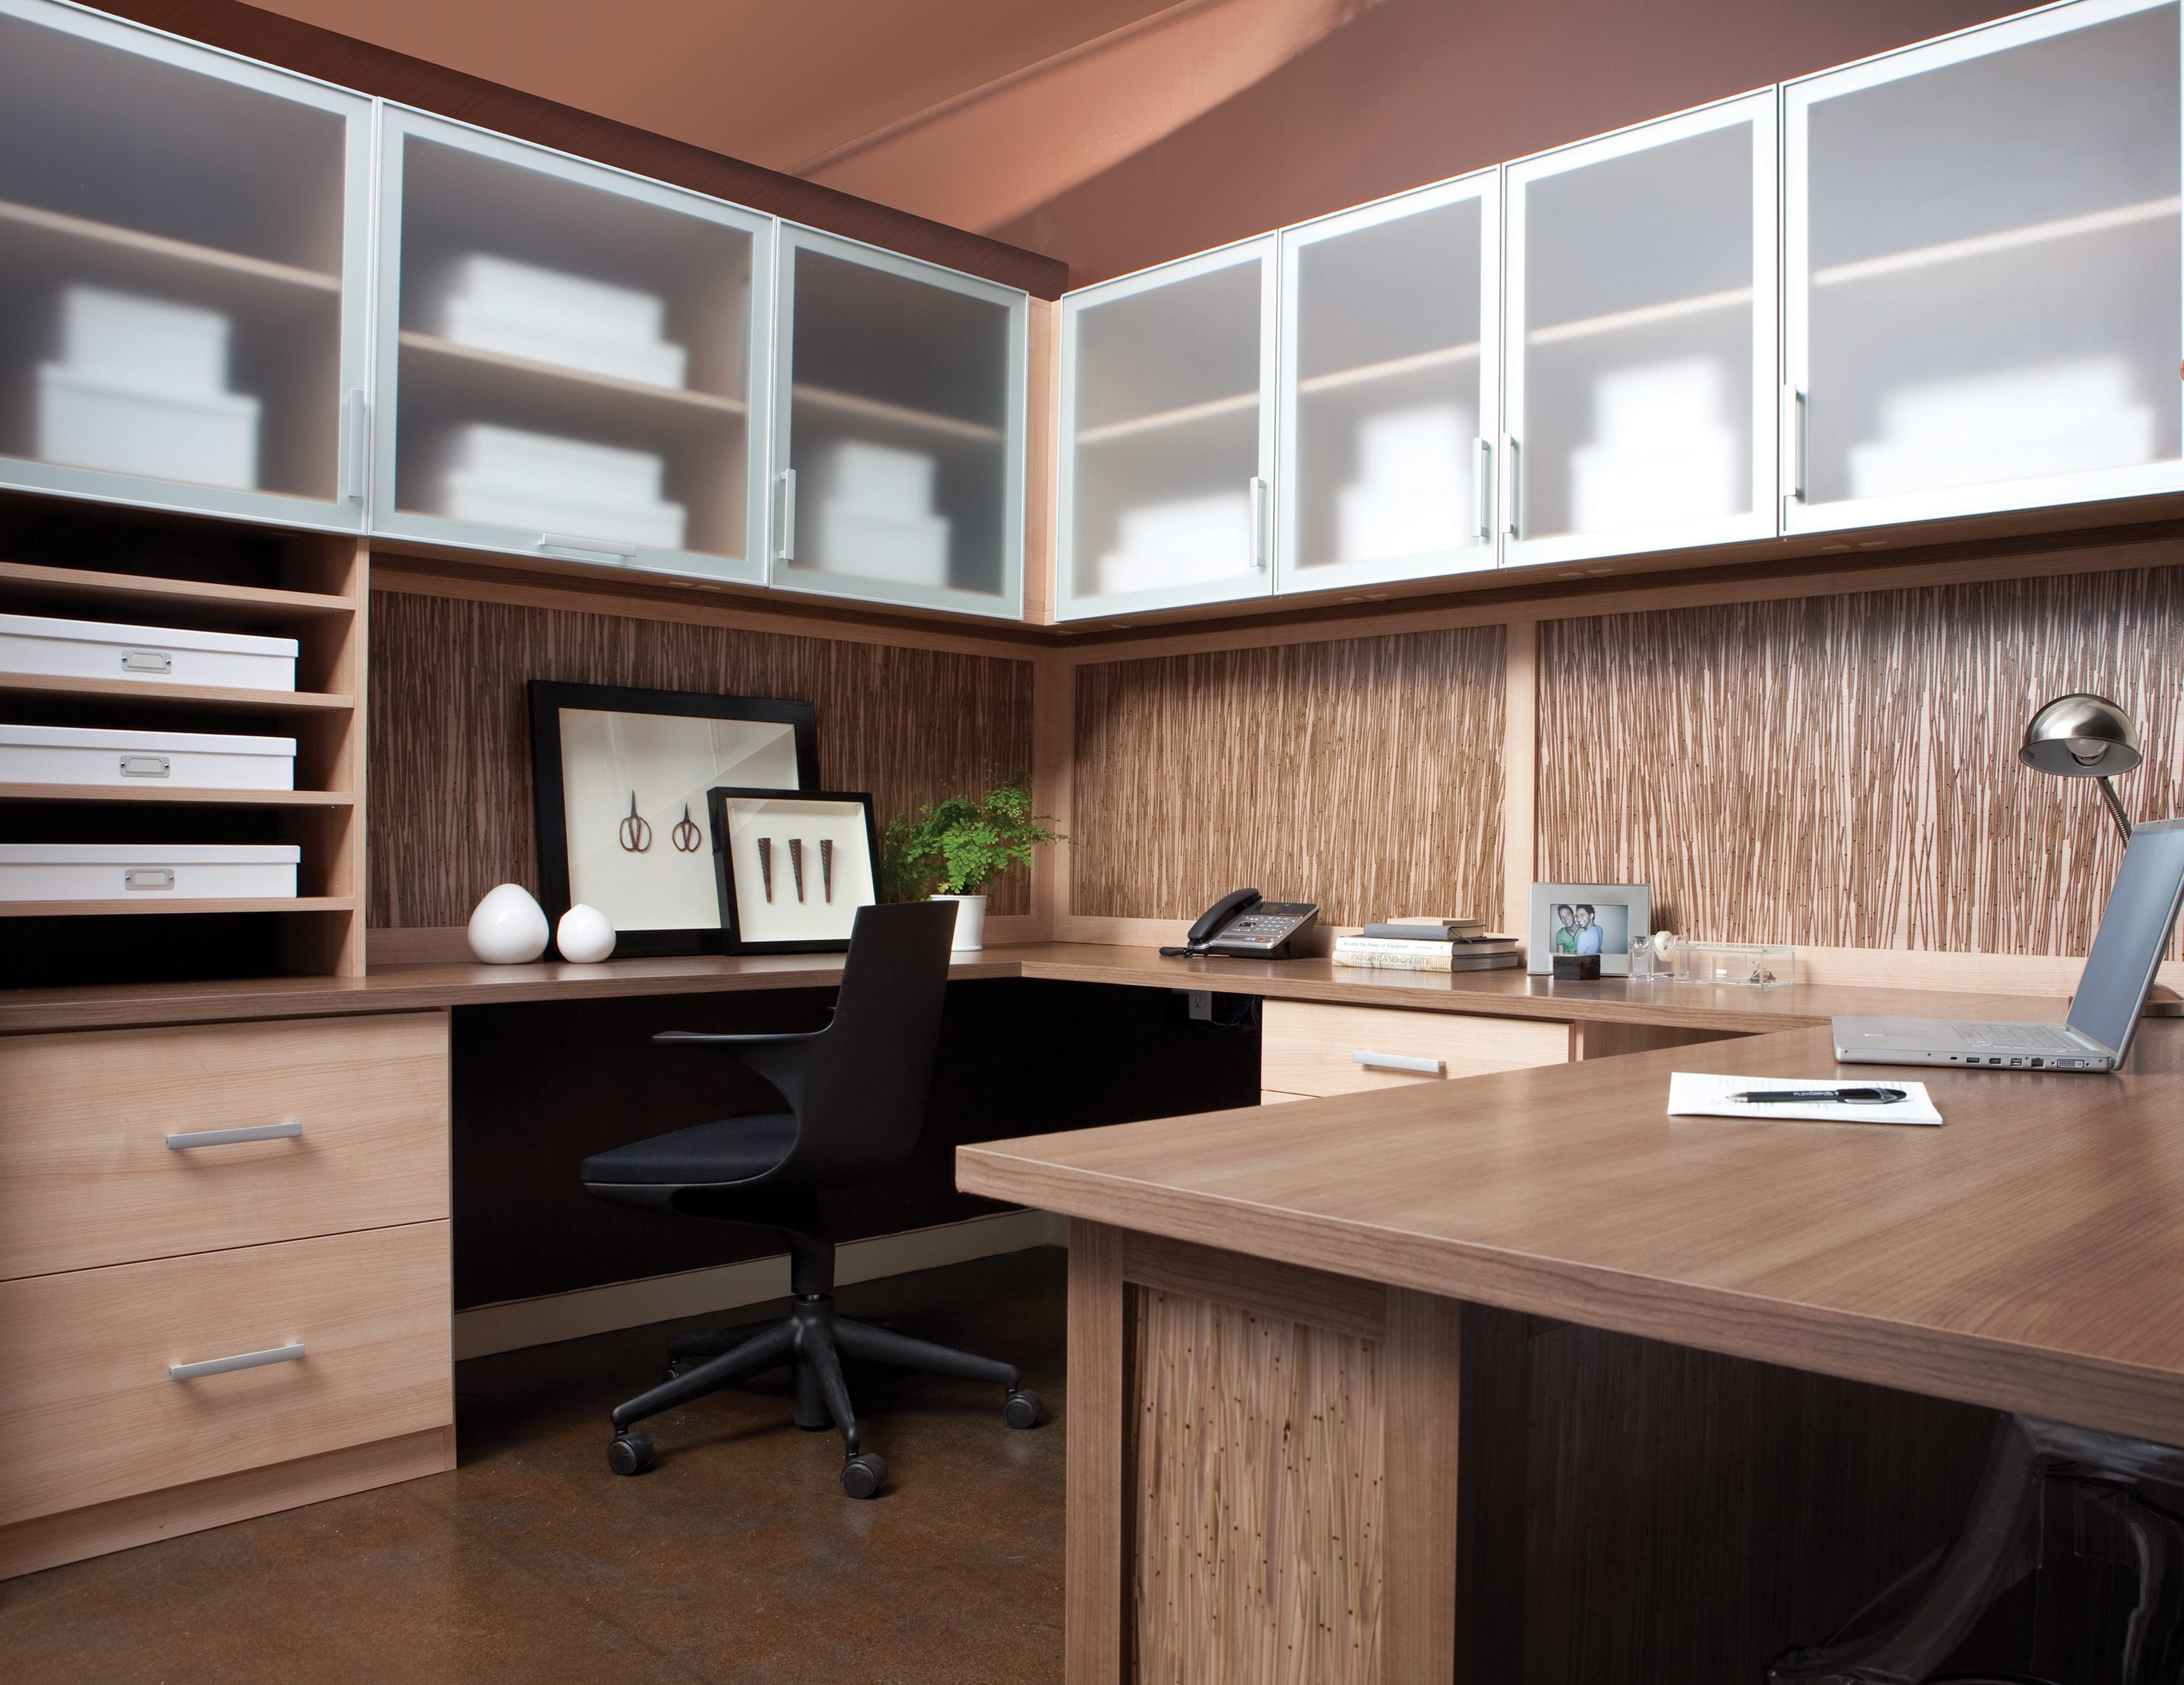 Home Office Cabinets Home Office Storage Furniture Solutions Ideas By California Closets